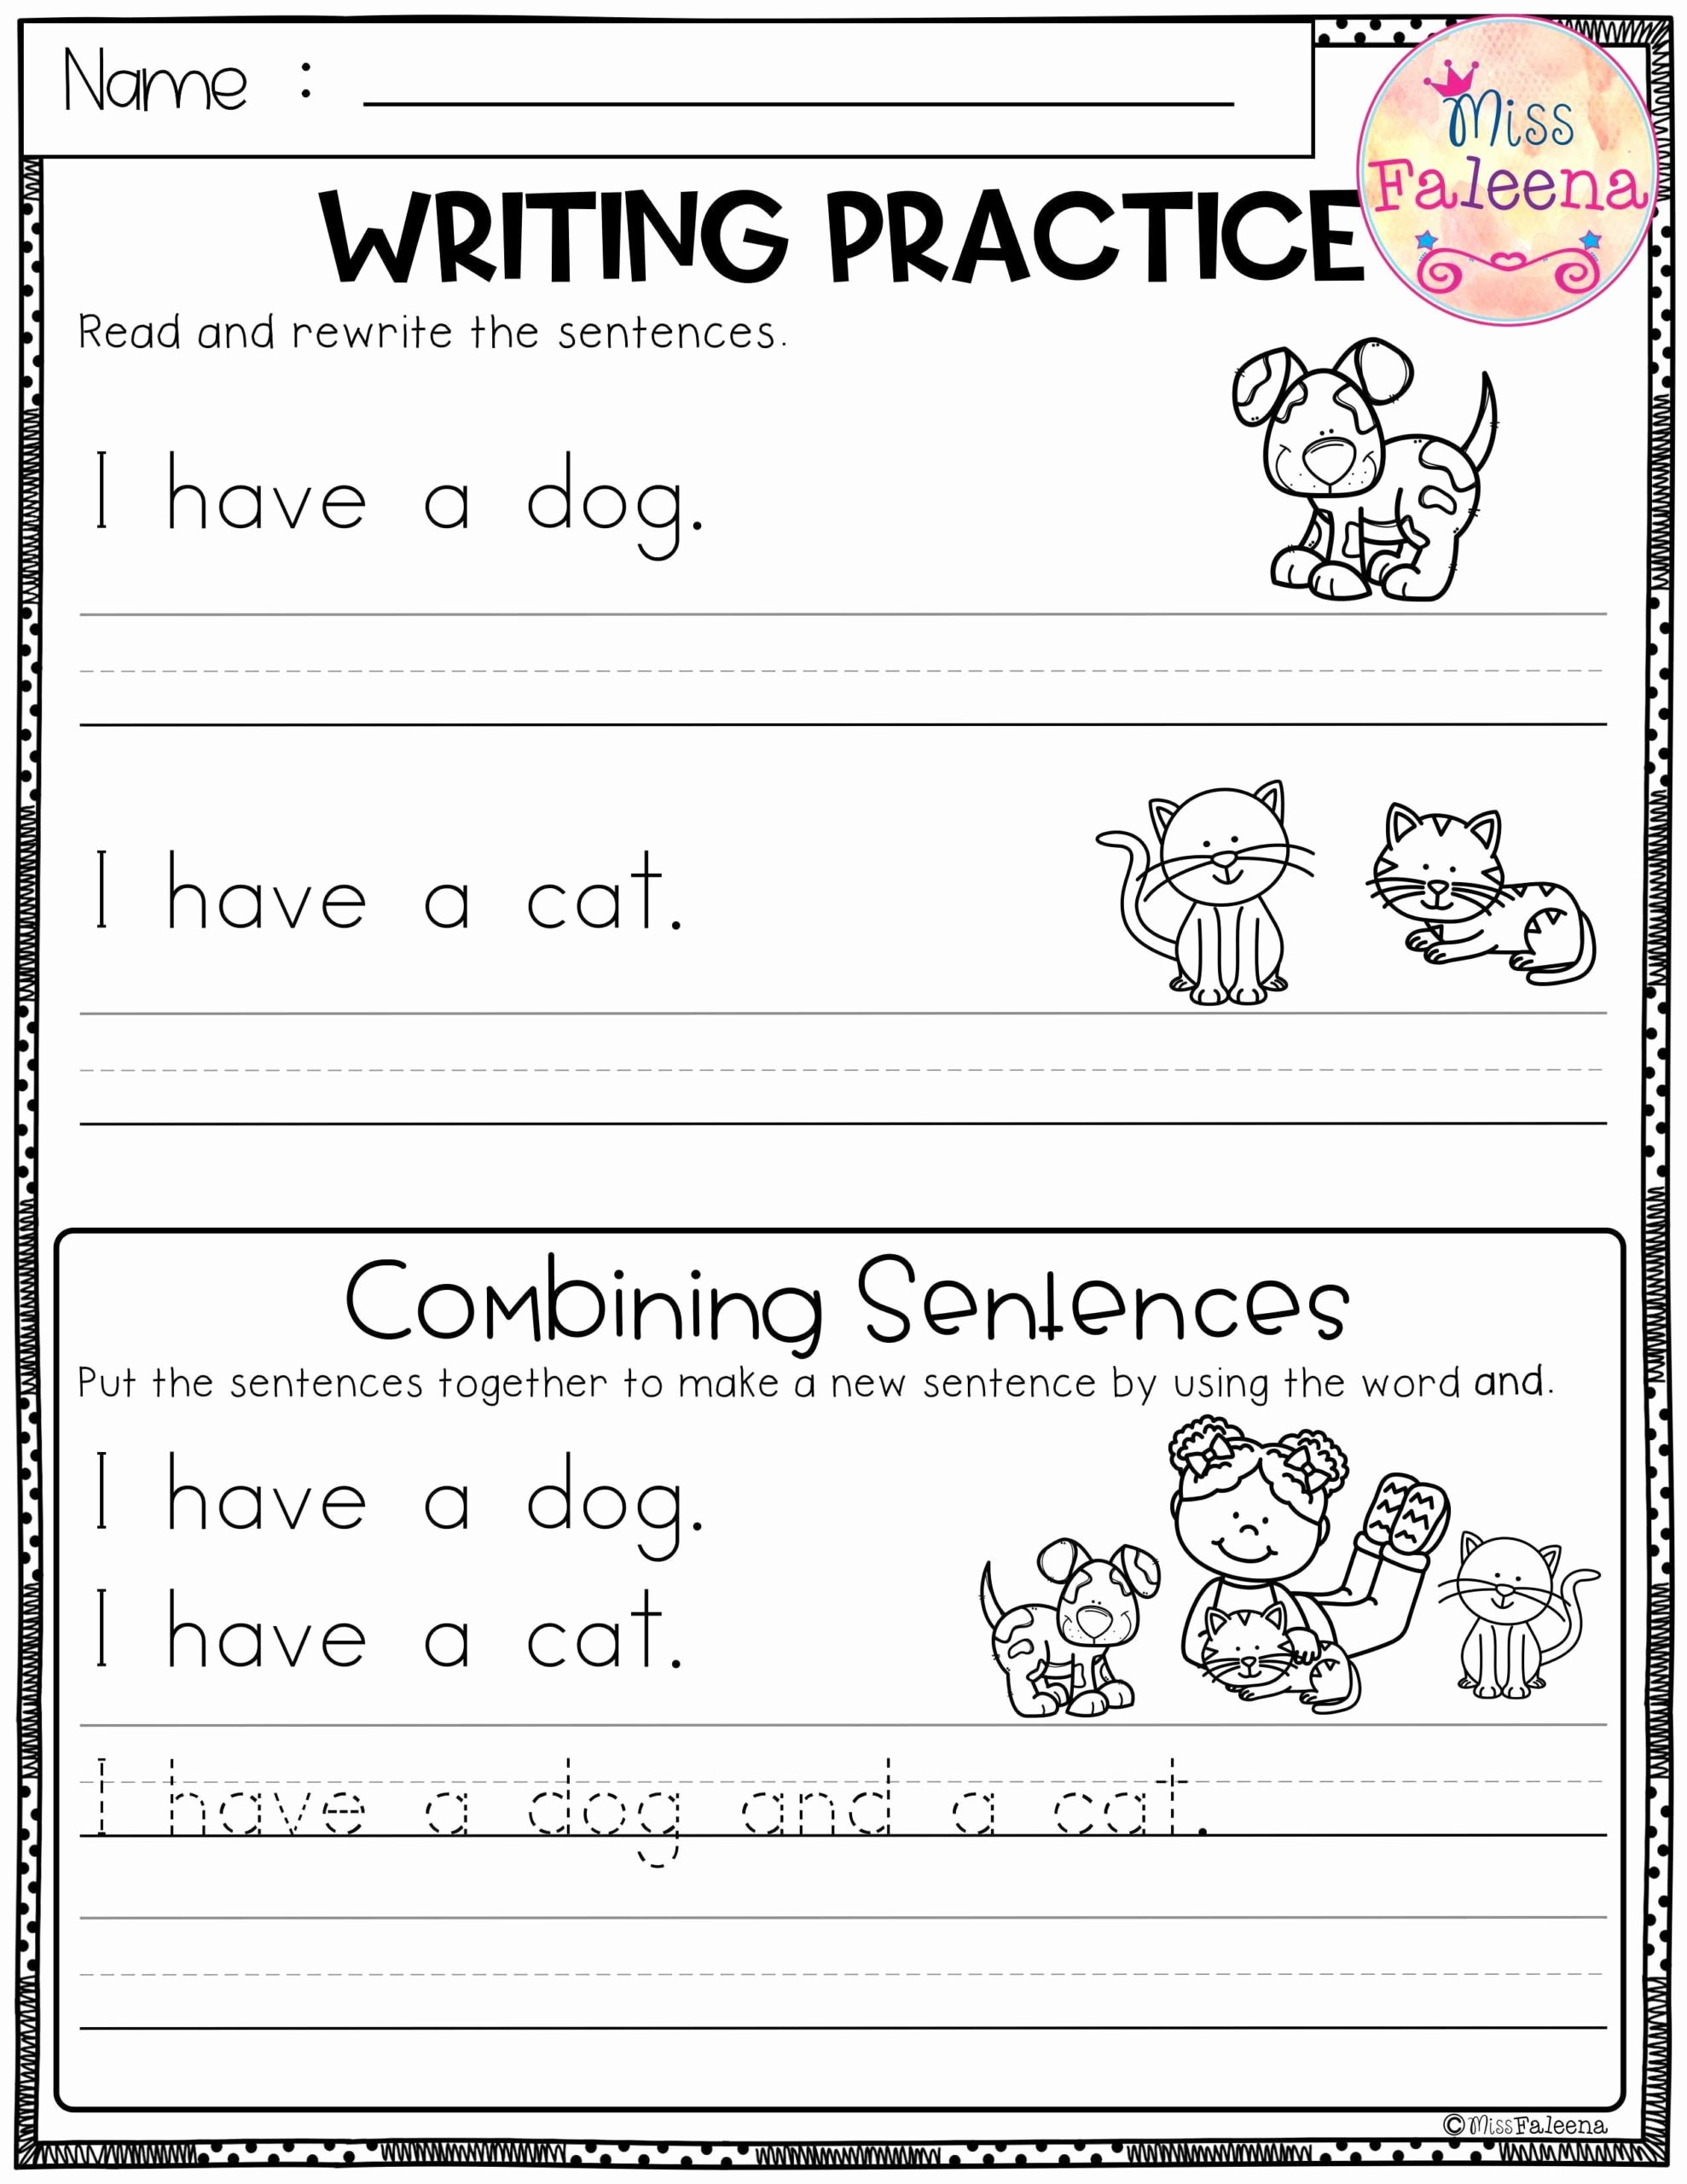 Practice Writing Worksheets for Preschoolers Inspirational Free Writing Practice Bining Sentences Sentence